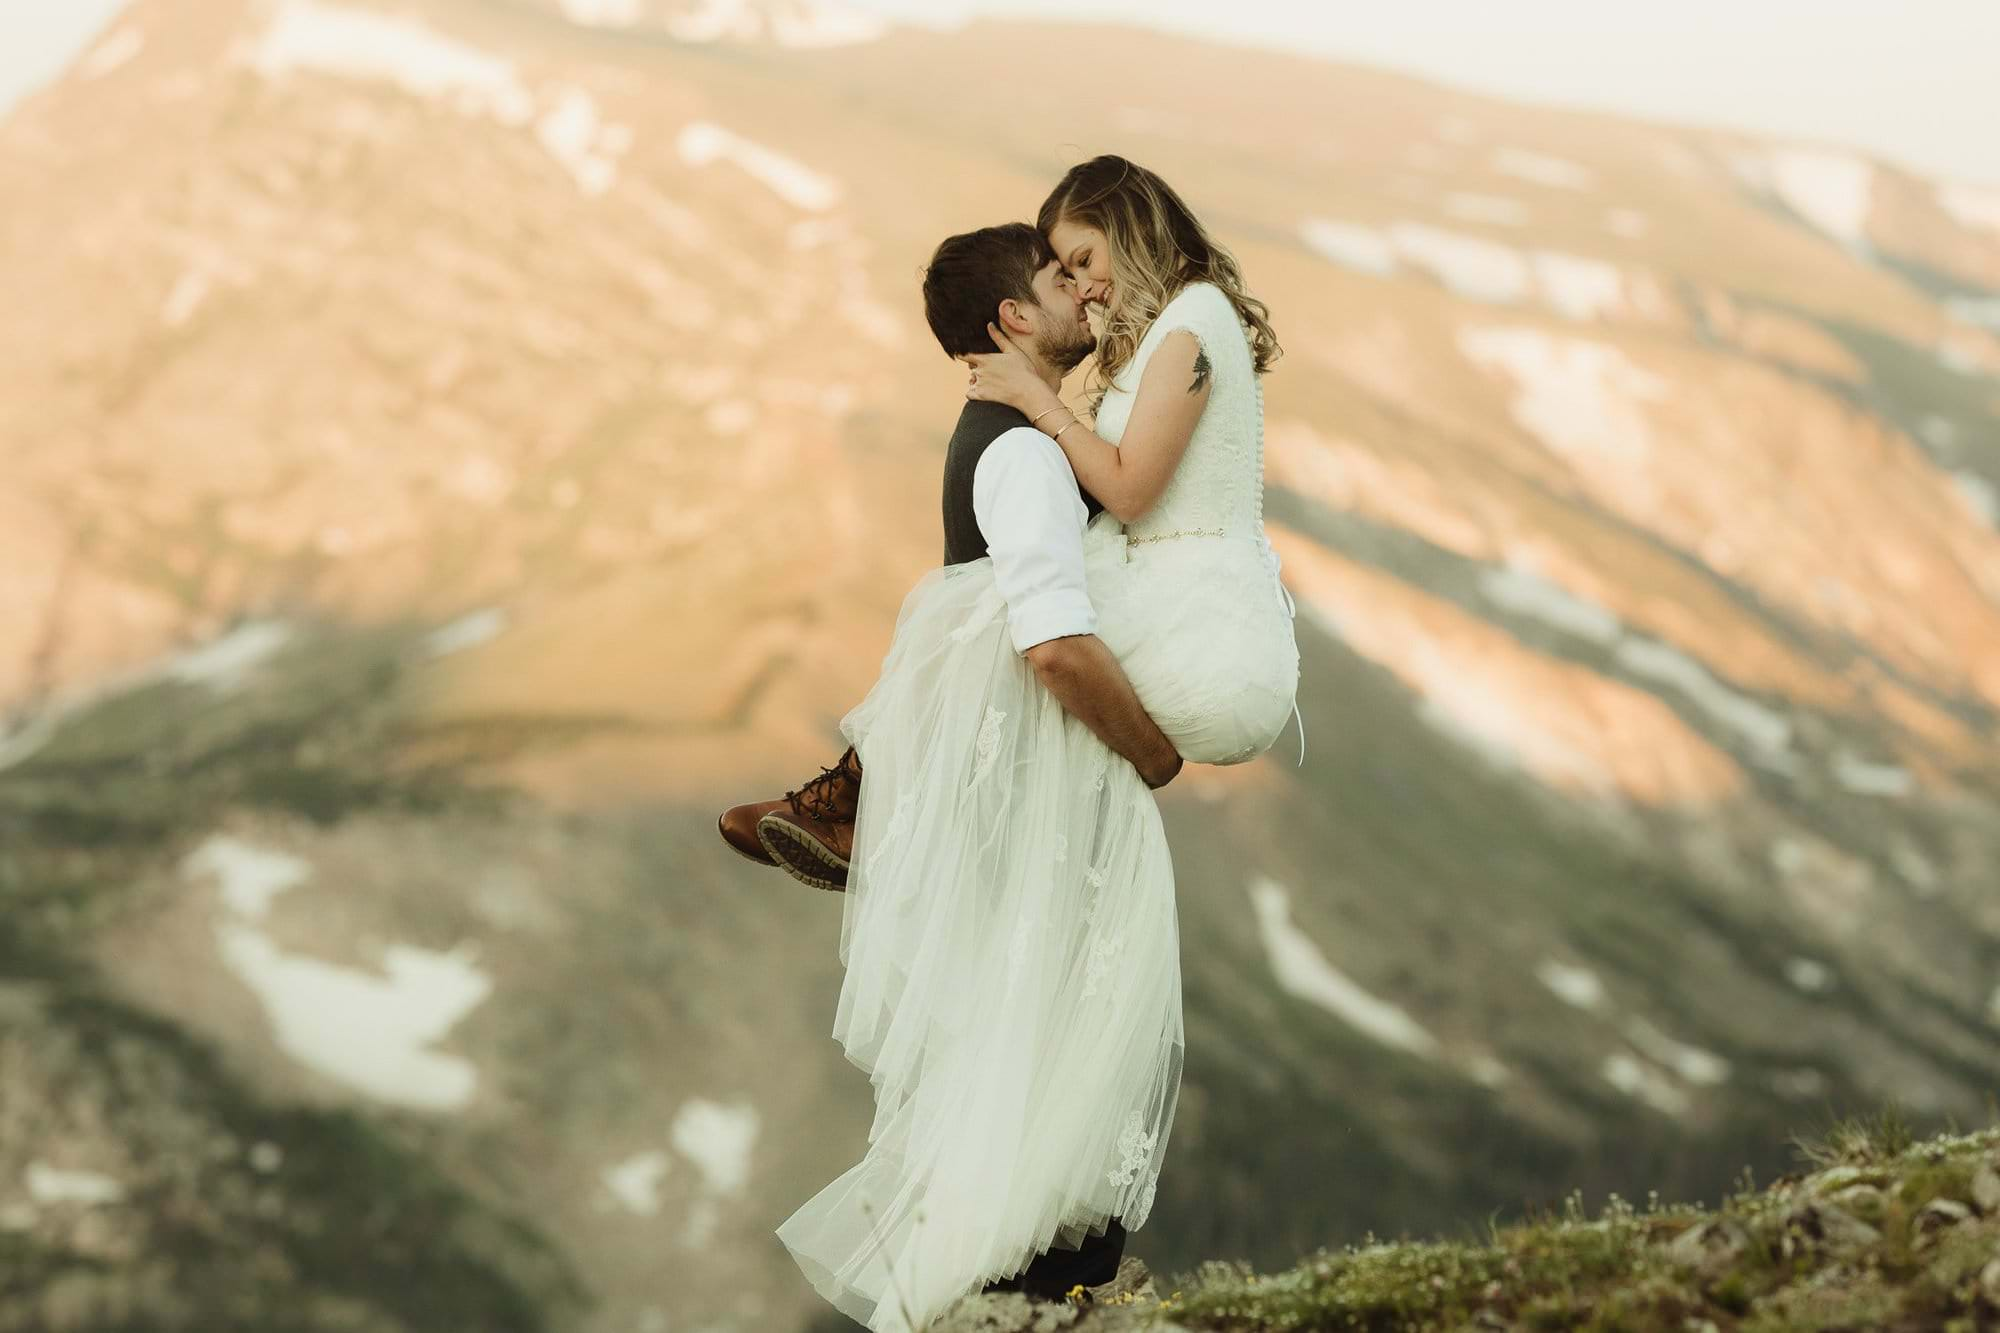 ROCKY MOUNTAIN NATIONAL PARK ELOPEMENT|RMNP ELOPEMENT|GRAND COUNTY HIKING ADVENTURES|SELF-SOLEMNIZING COLORADO ELOPEMENT |TANDA+STEPHEN